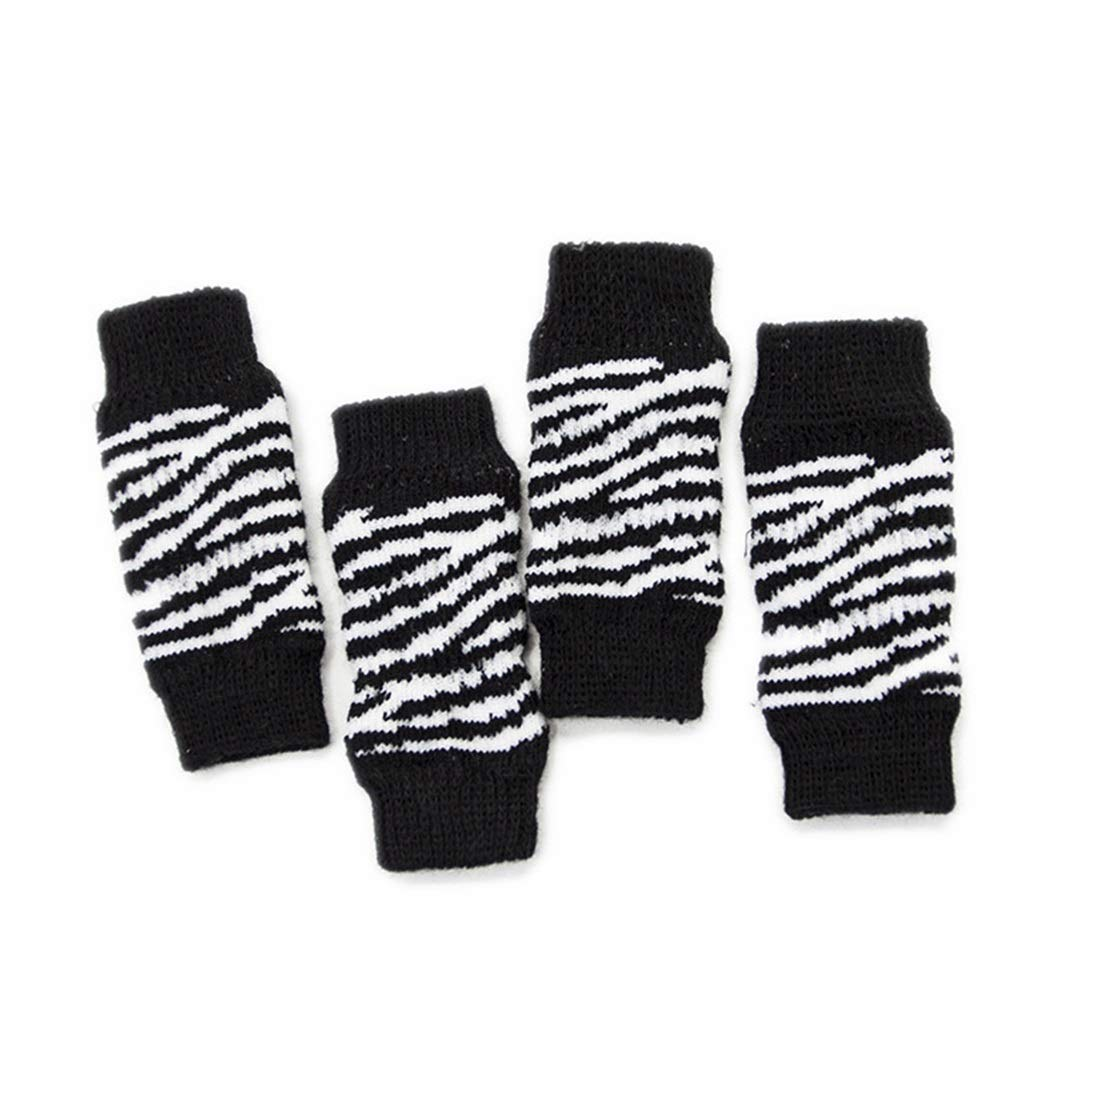 Black and White Small KTYX Pet Sock Predection Joint Dog Knee Pads Pet Supplies Socks Legs pet Clothes (color   Leopard, Size   L)